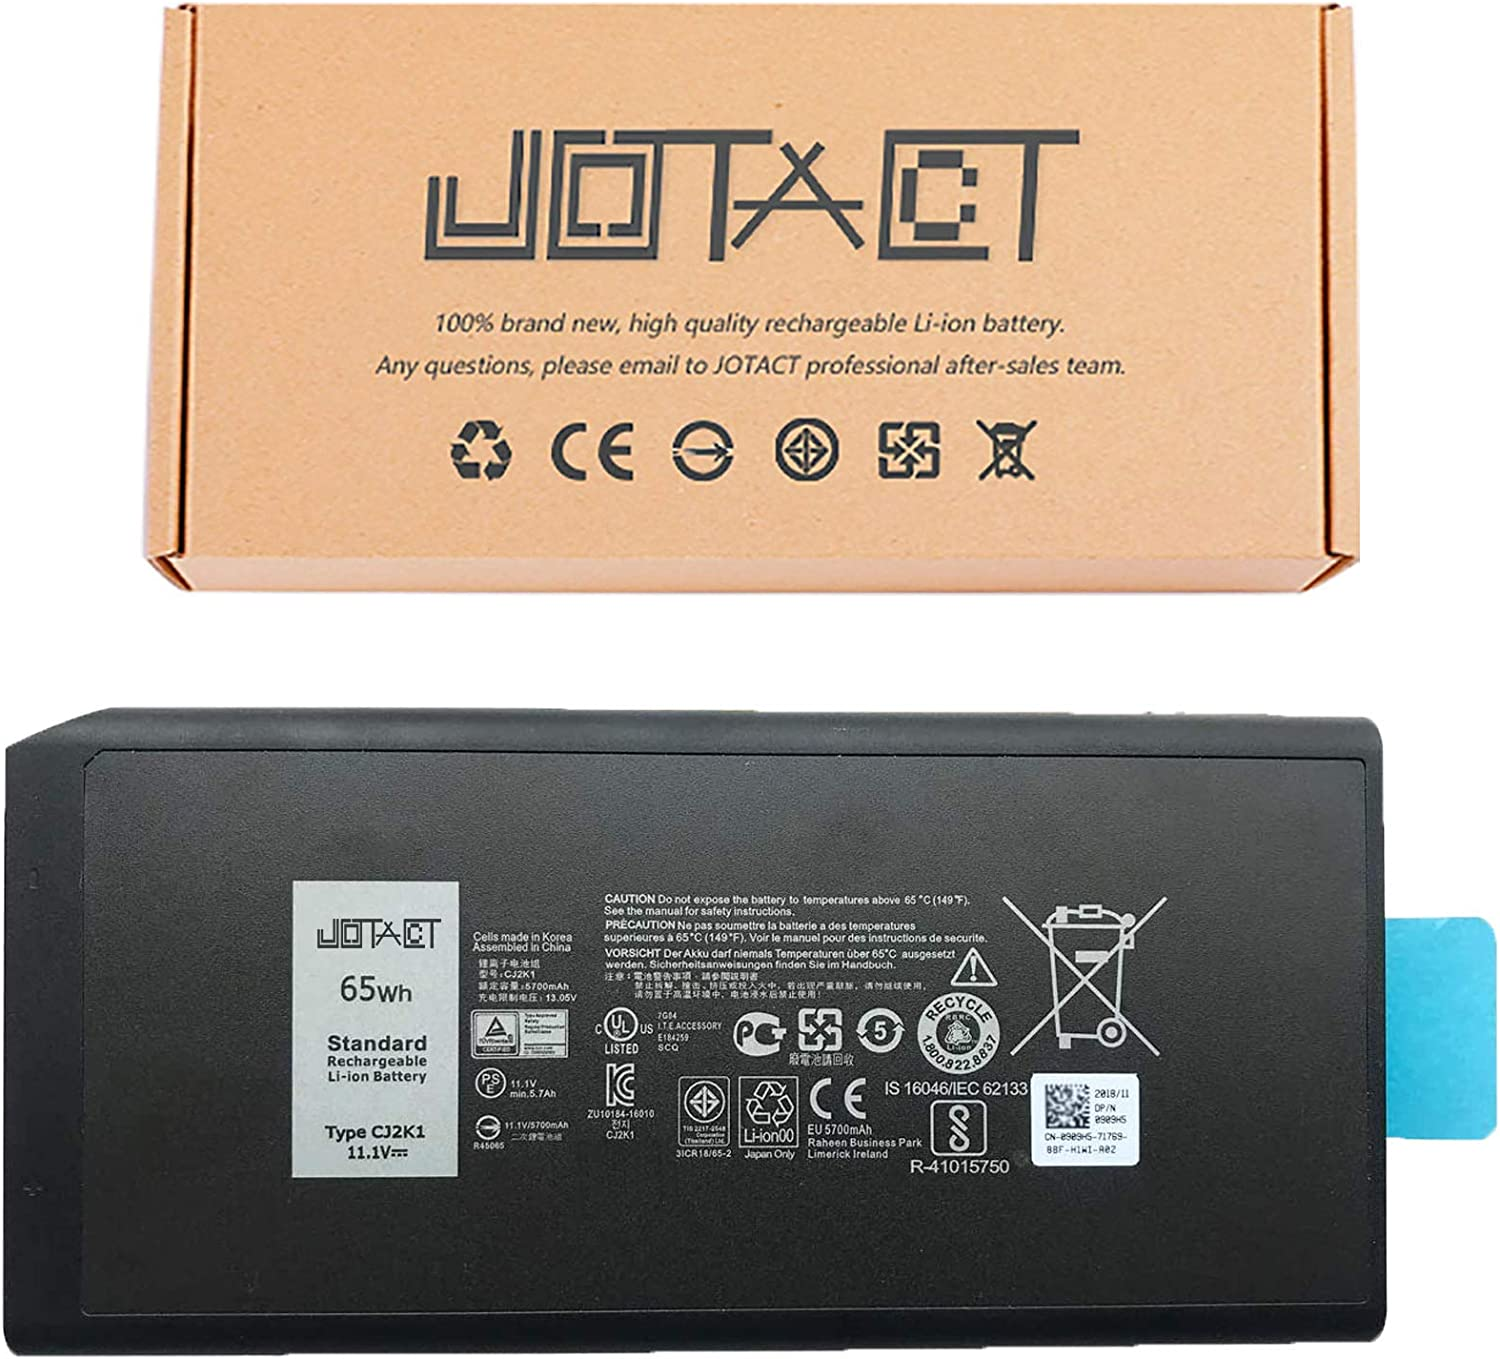 JOTACT CJ2K1(11.1V 65Wh/5700mAh 6-Cell) Laptop Battery Compatible with Dell Latitude 5404 7404 5414 7414 Rugged Extreme Series Notebook DKNKD X8VWF 4XKN5 5XT3V 05XT3V VCWGN 0VCHGN 09FN4